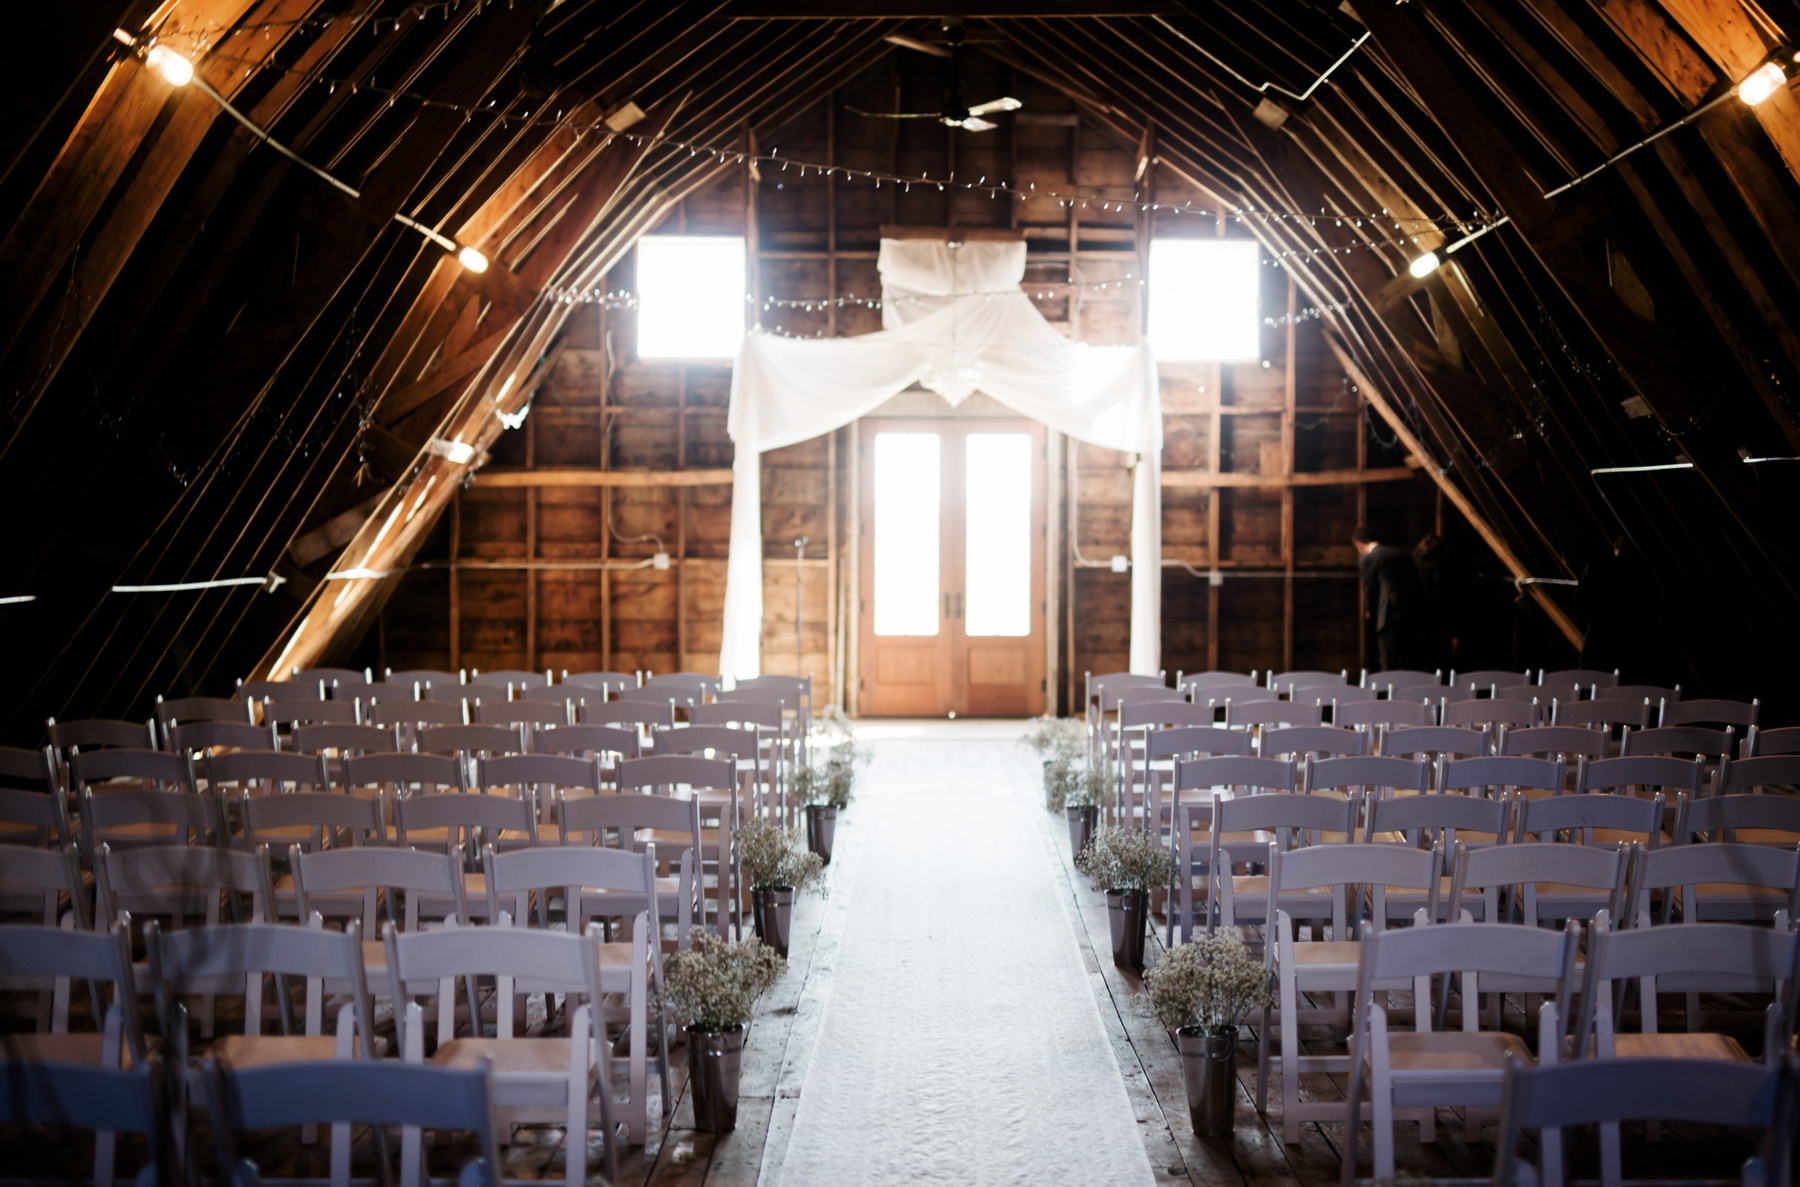 wedding-photographer-rochester-coops-event-barn-clewell-photography-16.jpg